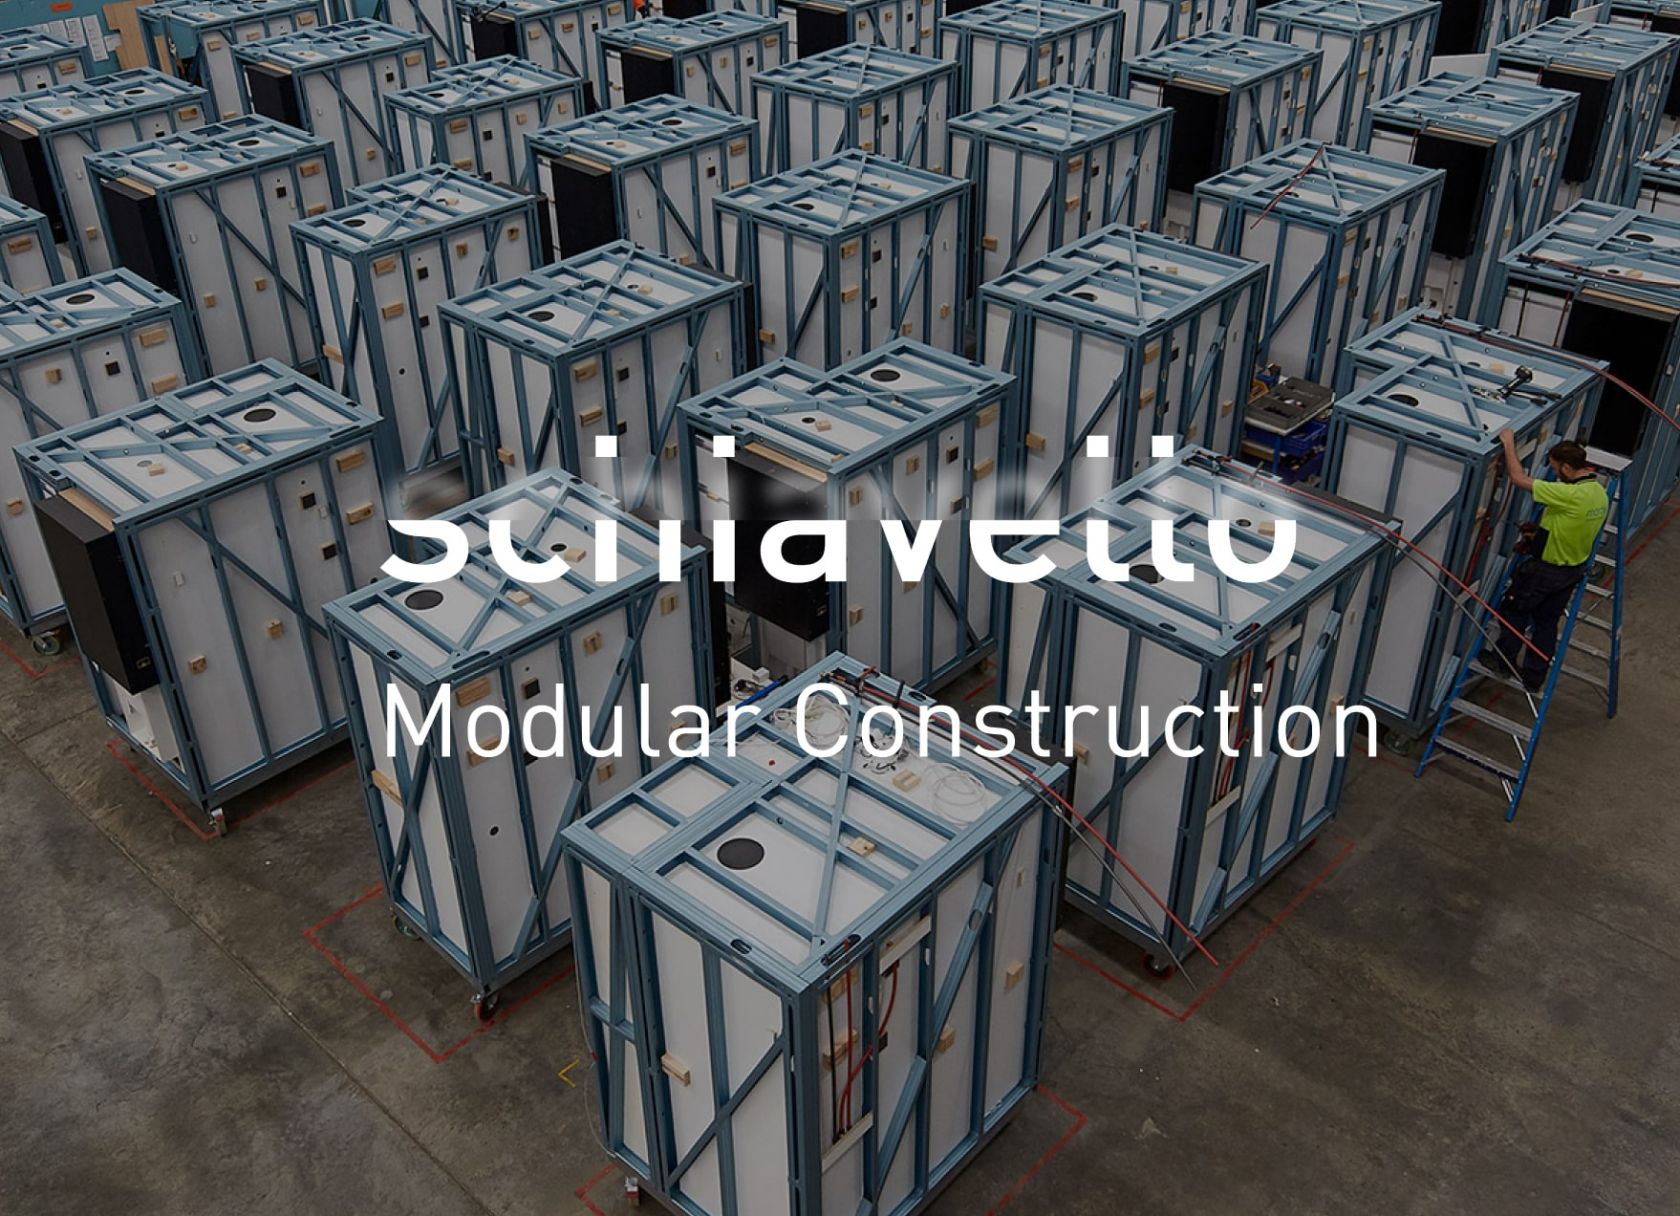 schiavello modular construction logo